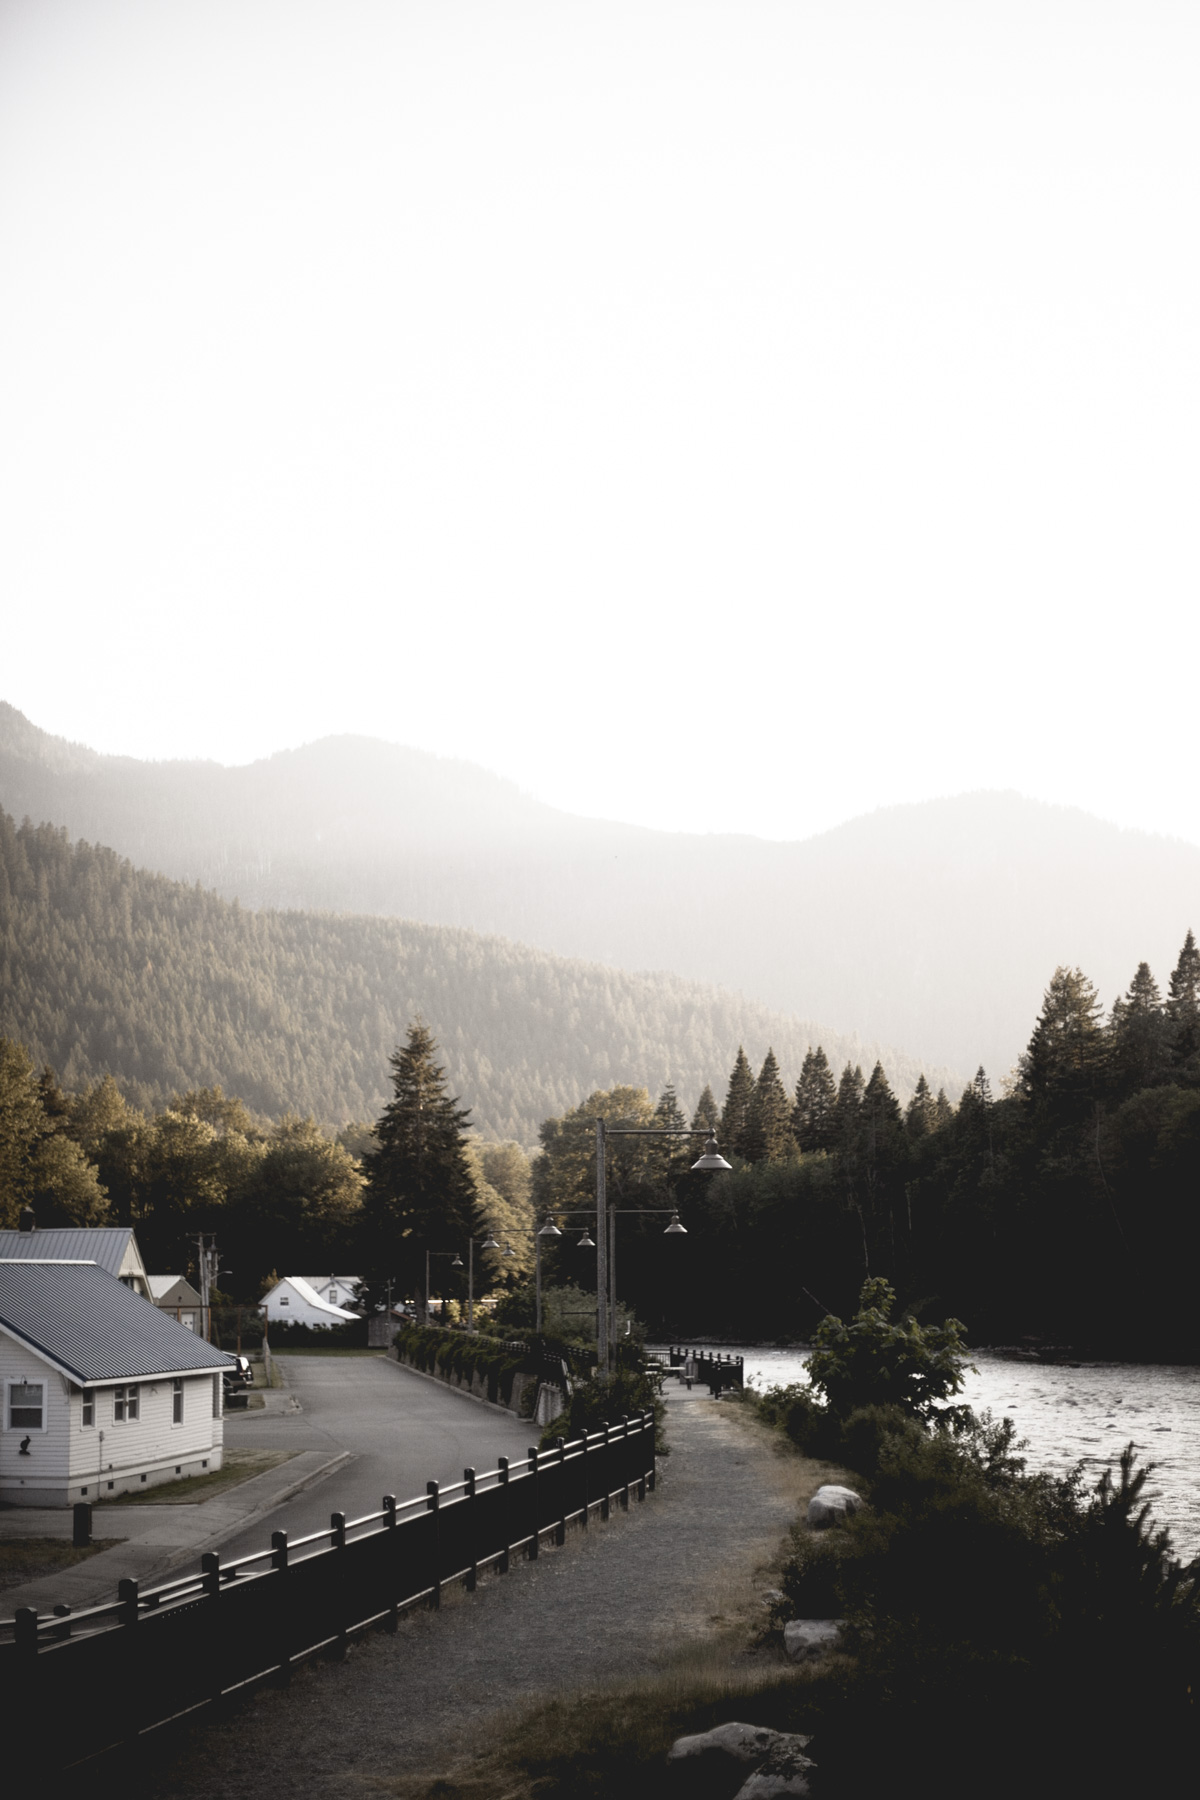 On the way back to Seattle, the sun was setting on the railroad town of Skykomish, population 205.